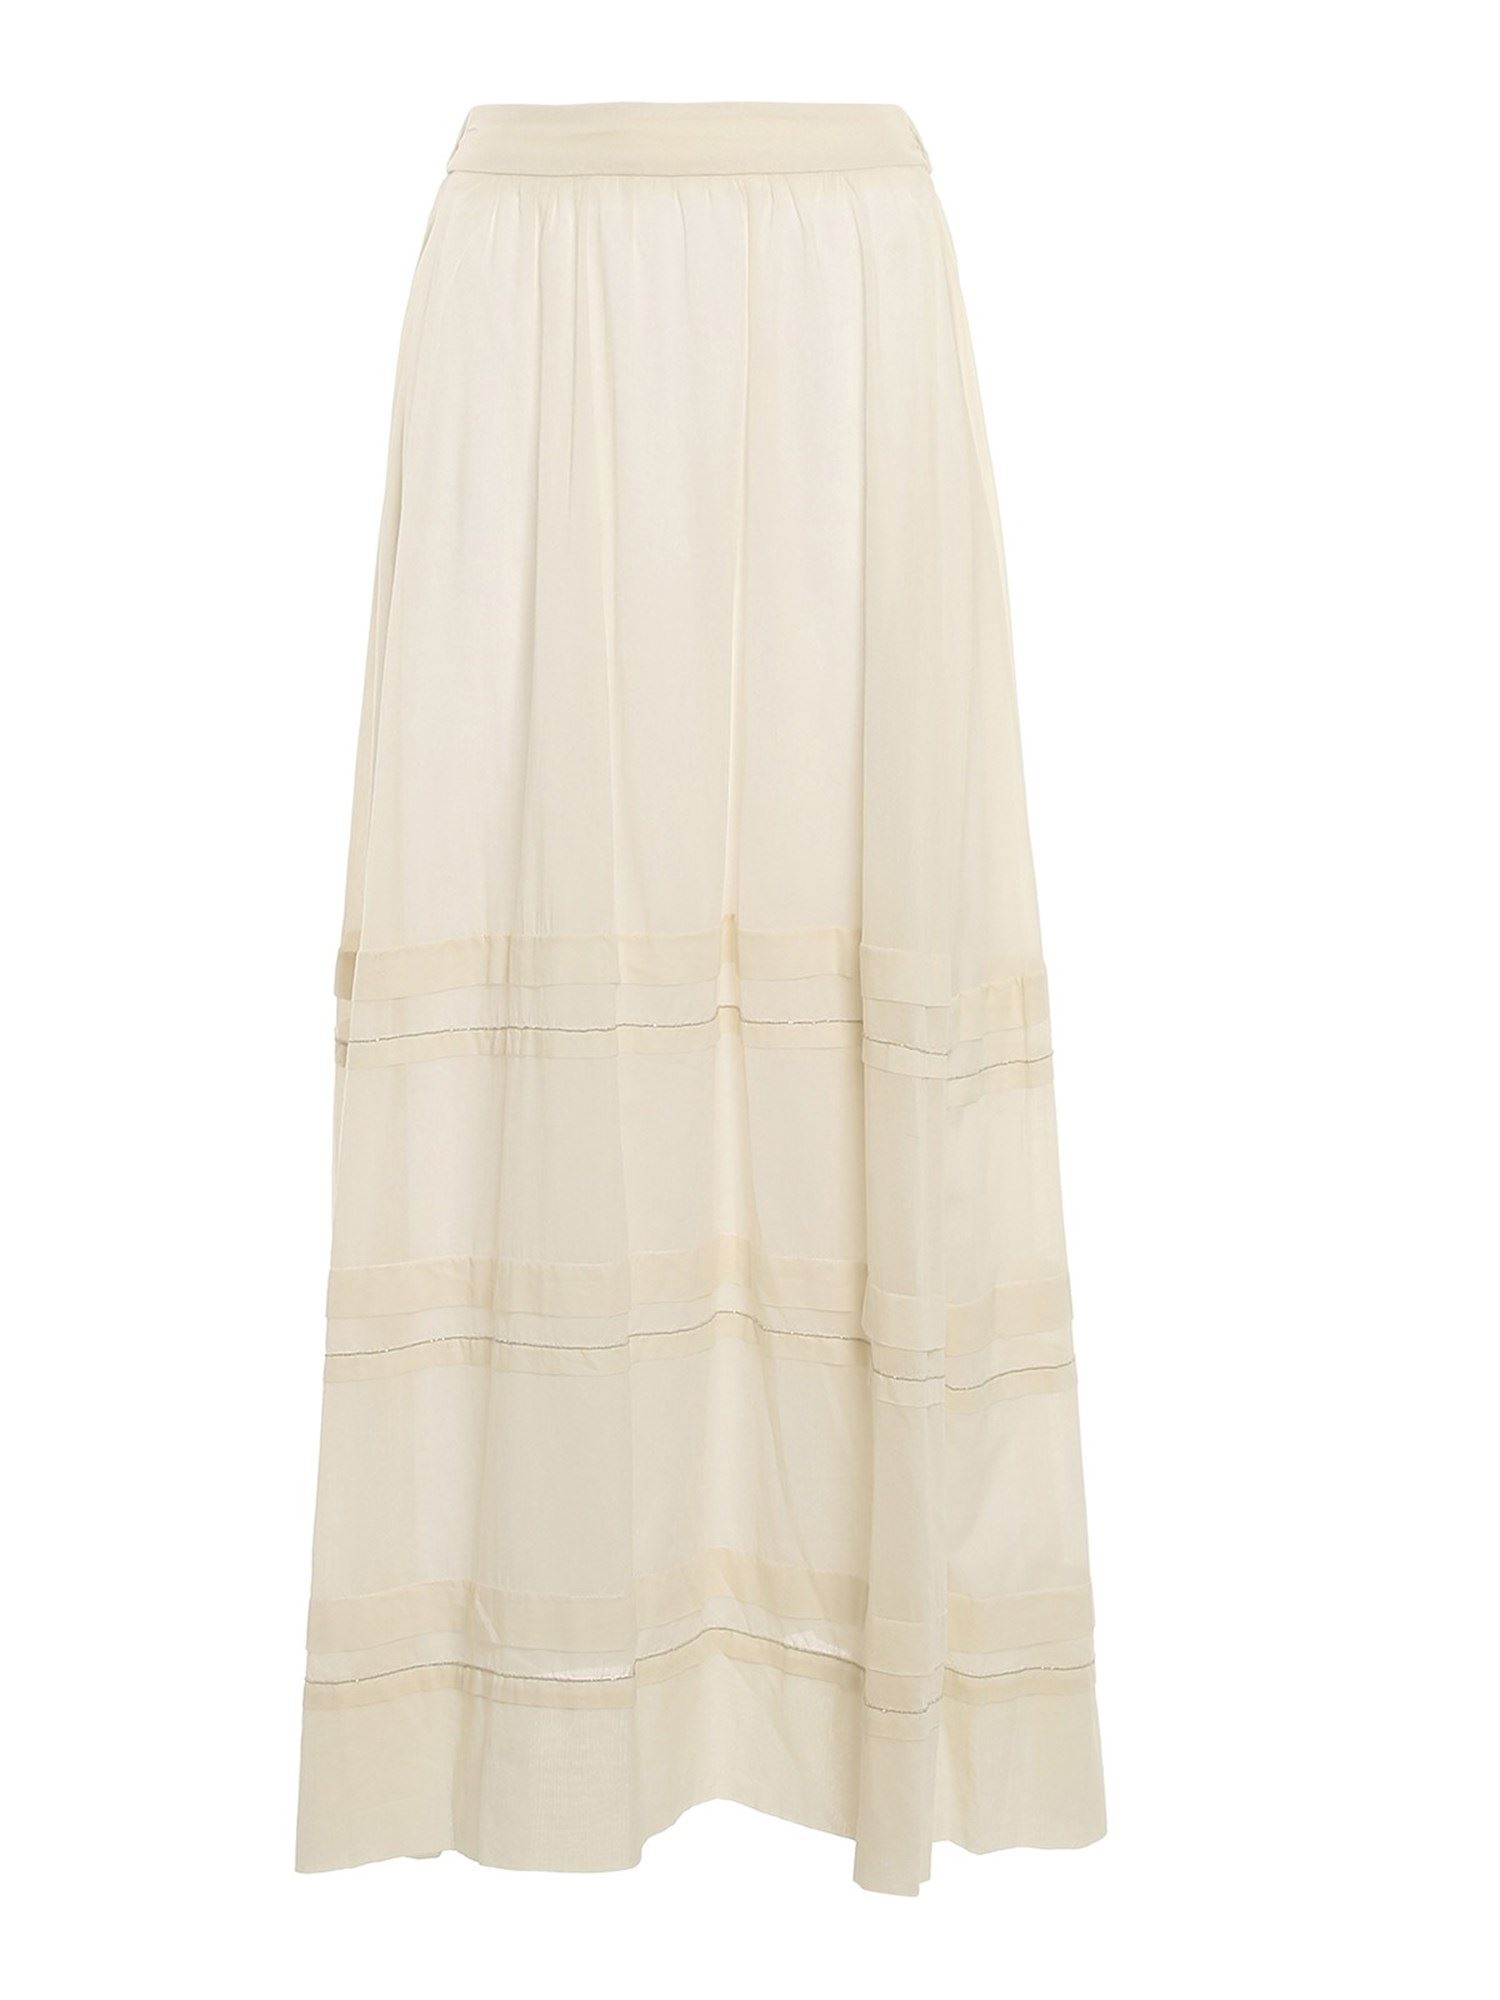 Peserico SKIRT WITH MICRO-BEADS IN CREAM COLOR